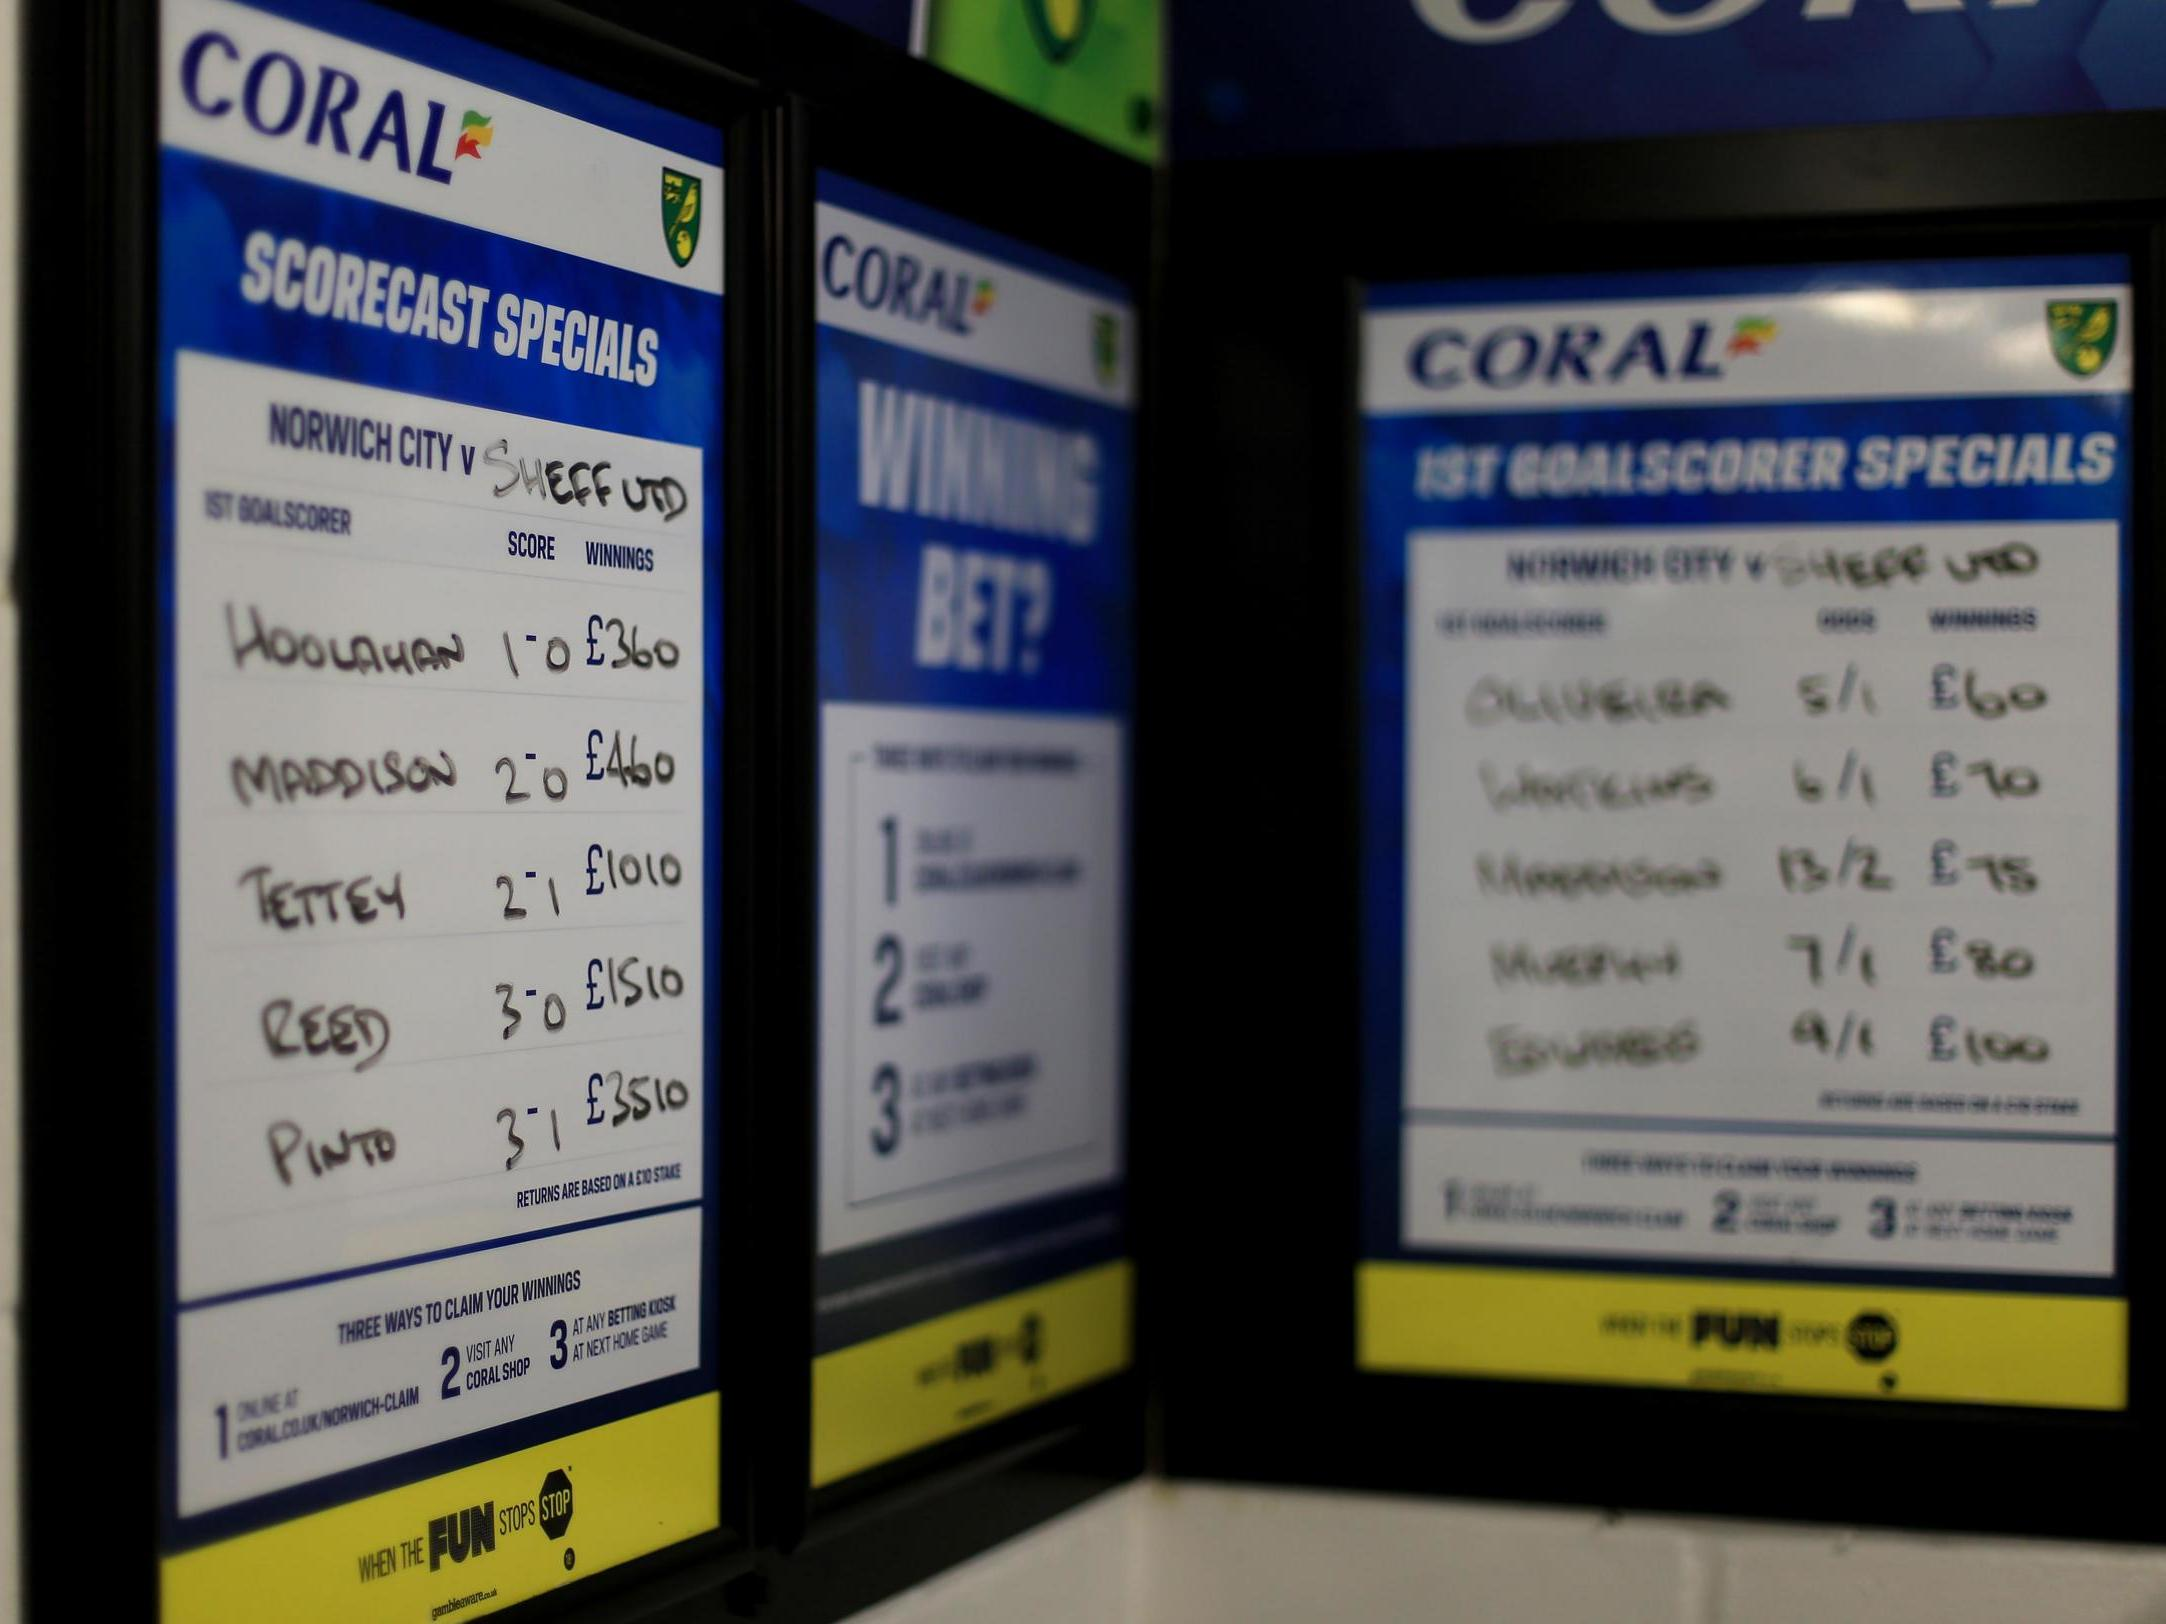 Football itself is addicted to money from the betting industry